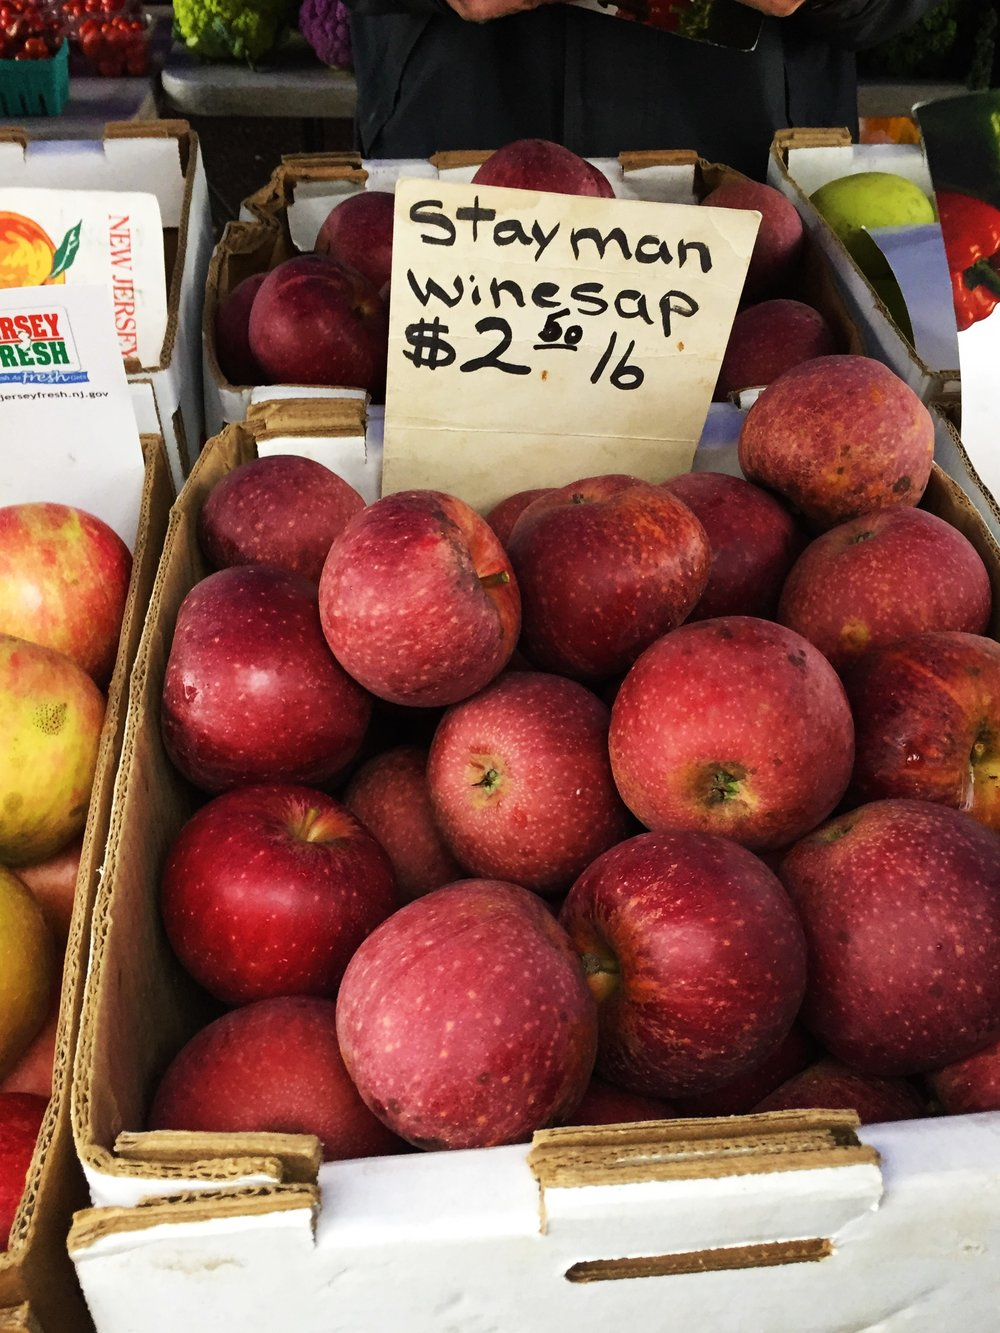 Stayman Winesap apples, an heirloom variety, at the Montclair Farmers' Market.  Winesap and stayman winesap apples are good cooking apples.